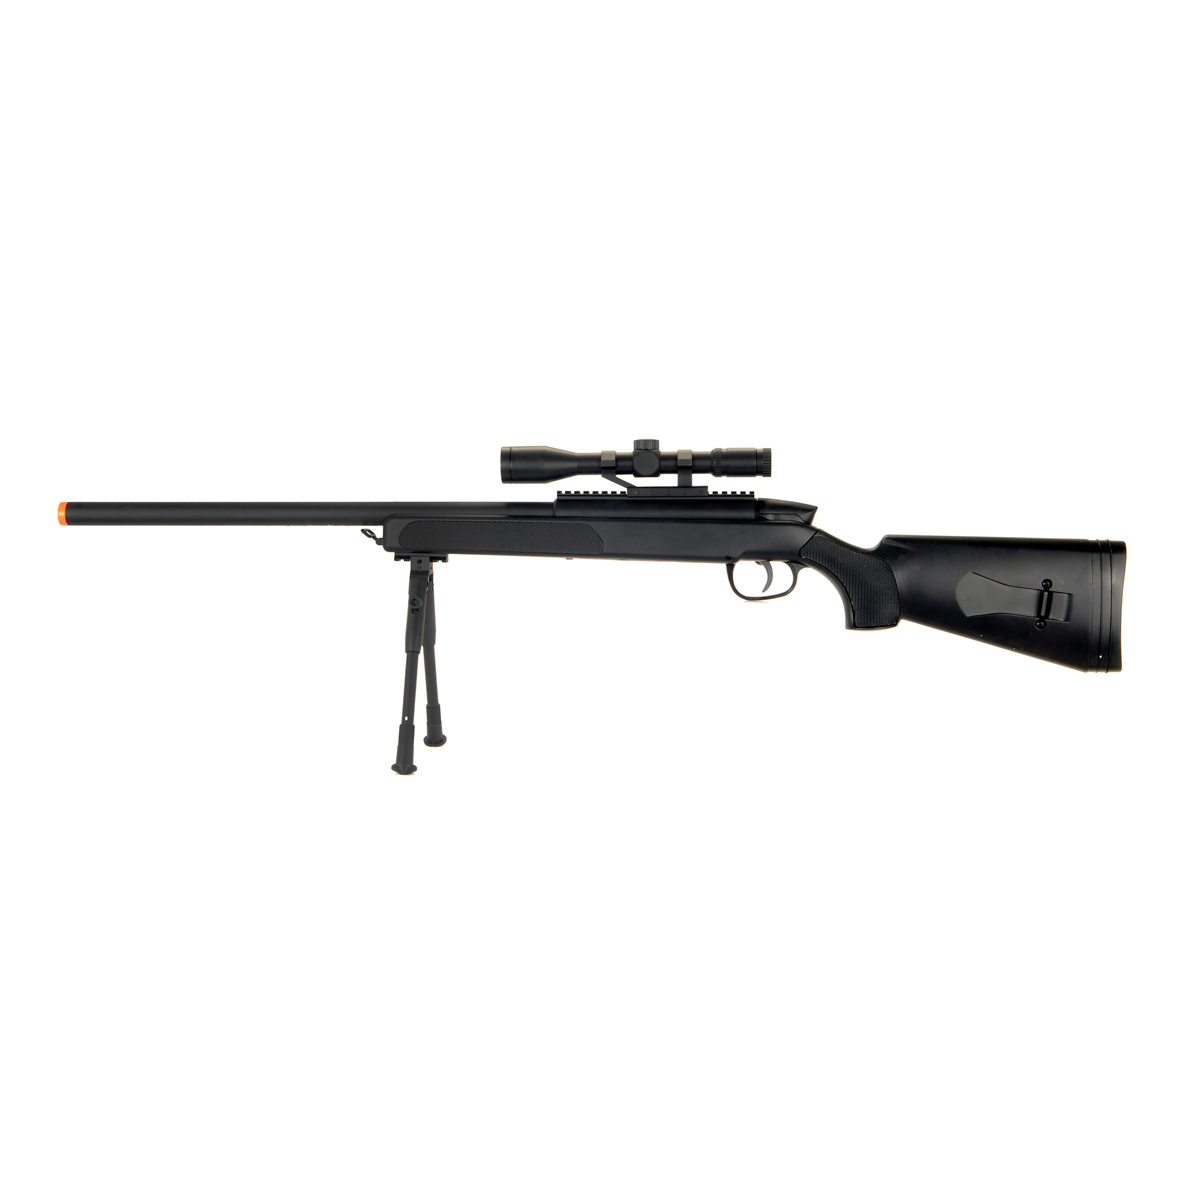 Cyma ZM51 Spring Powered Airsoft Bolt Action Sniper Rifle with Scope and Bipod